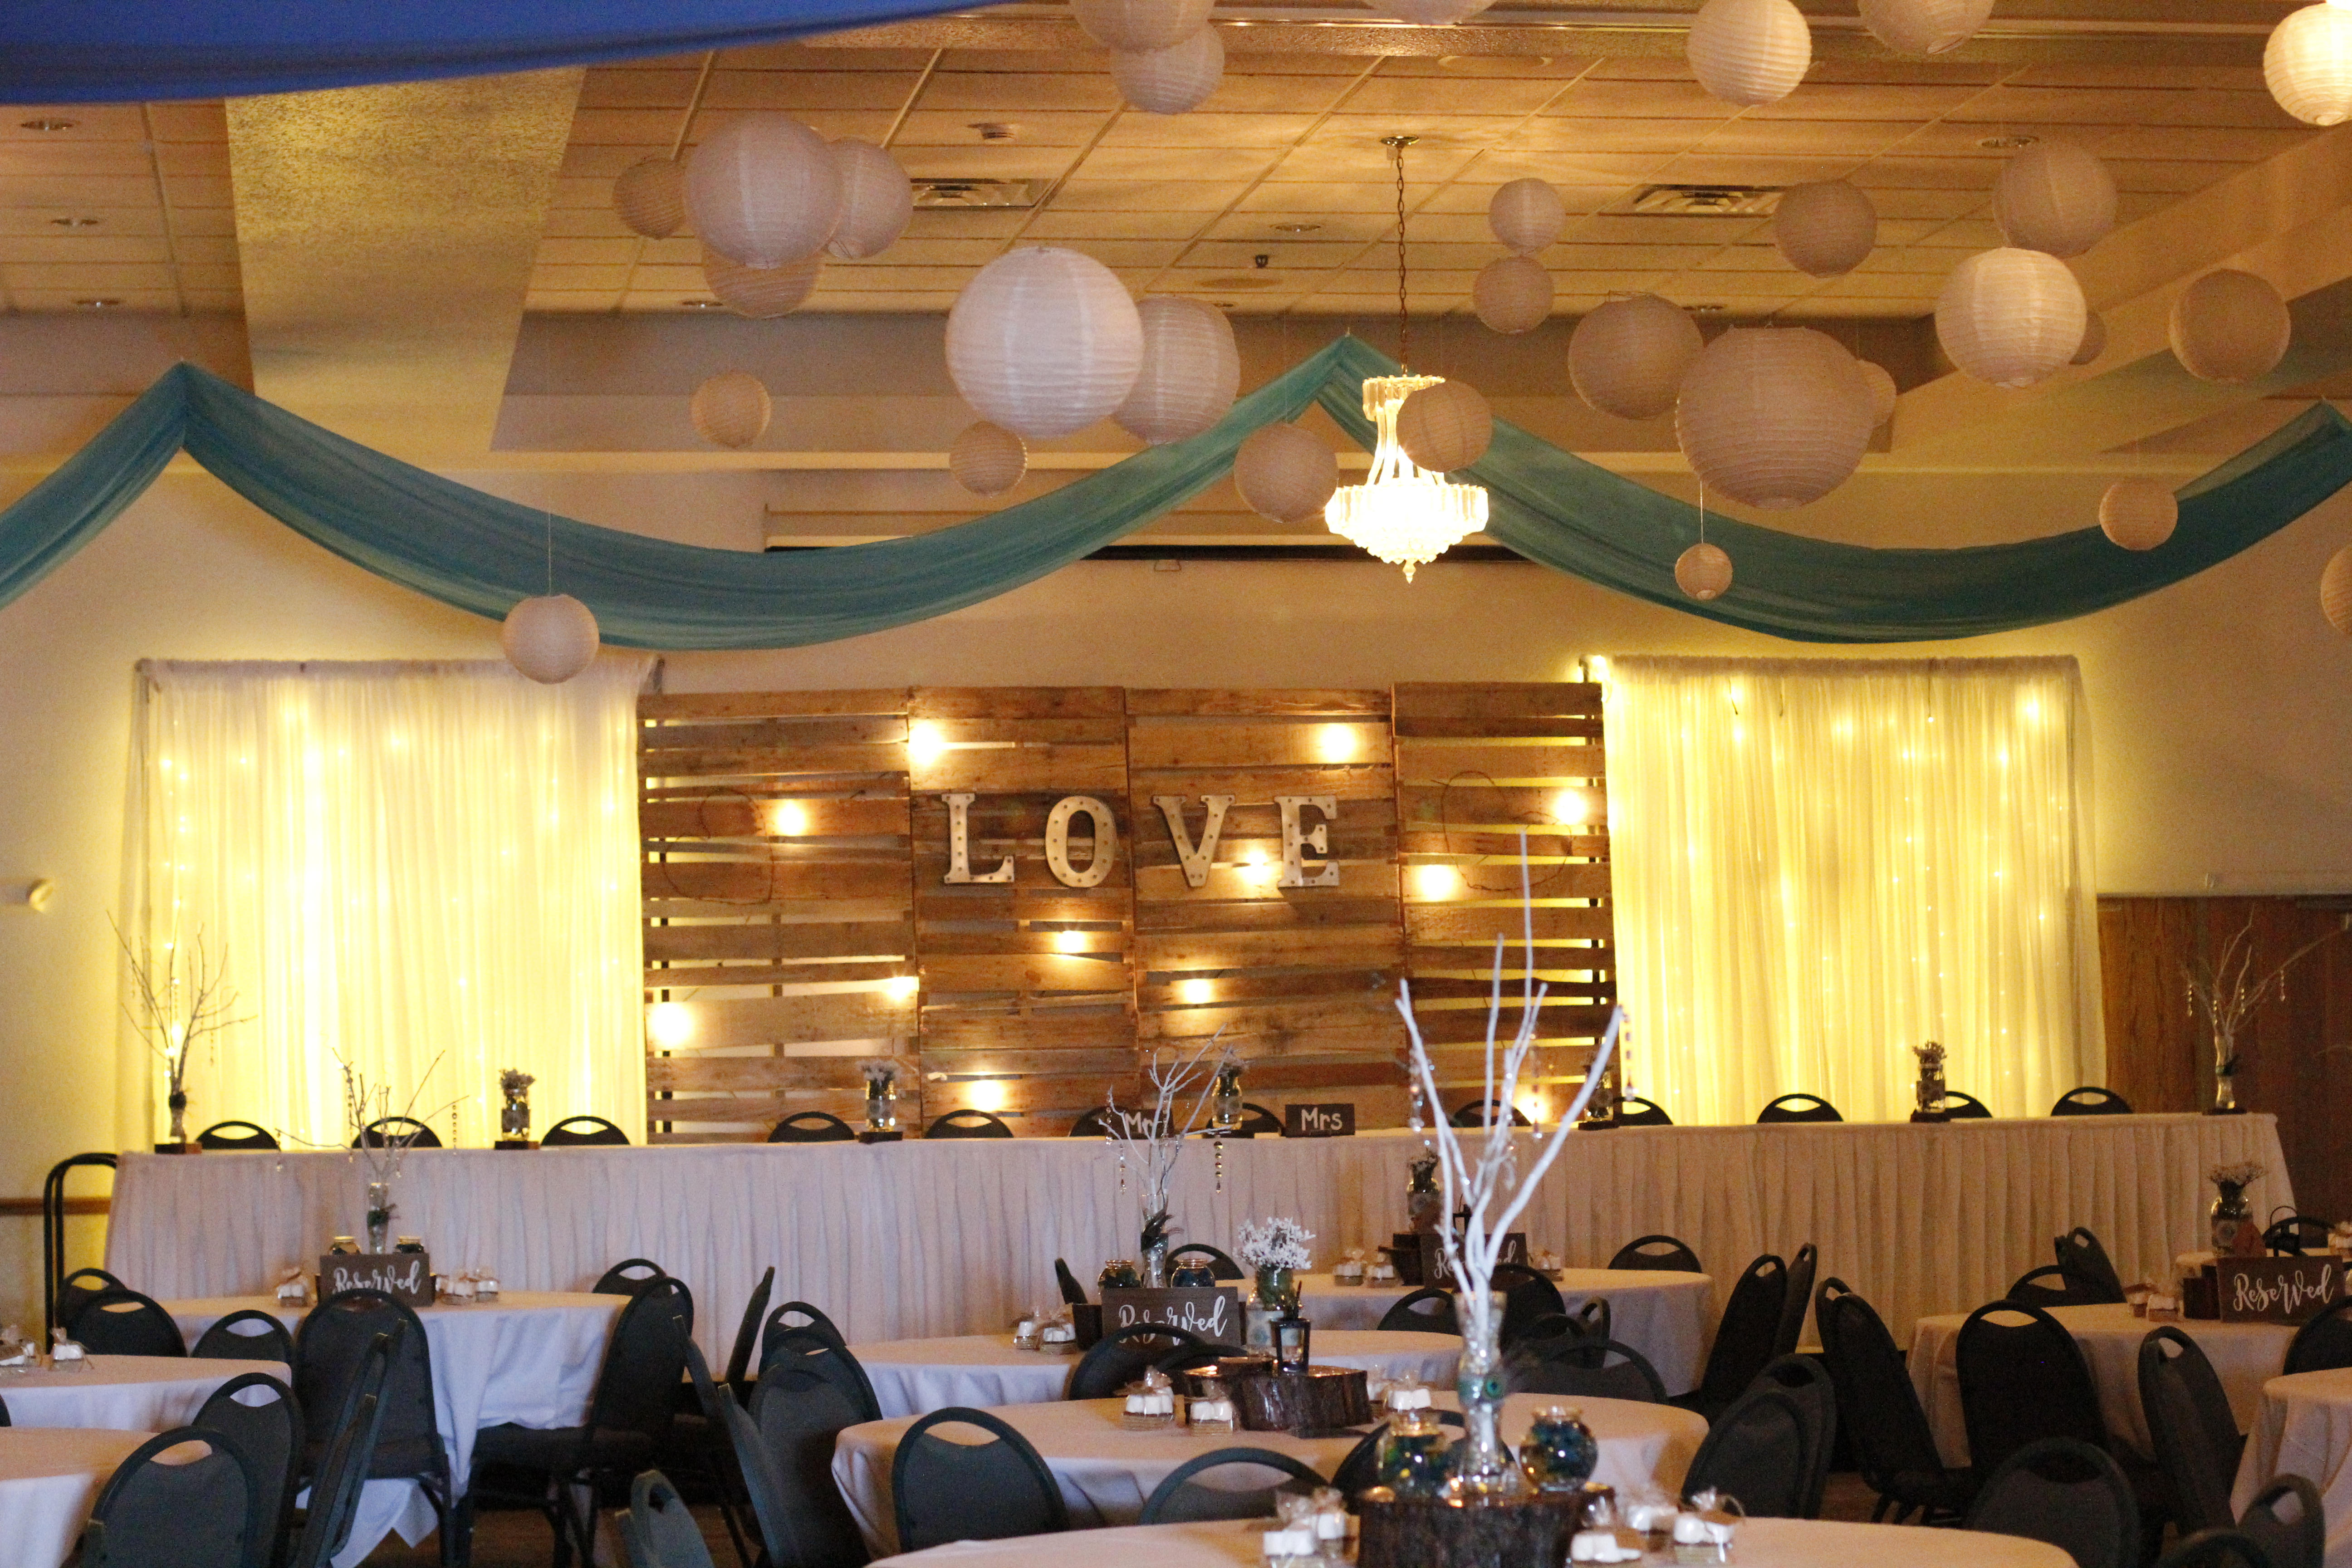 La Sure\'s Banquet Hall, Cakes, & Catering - Home